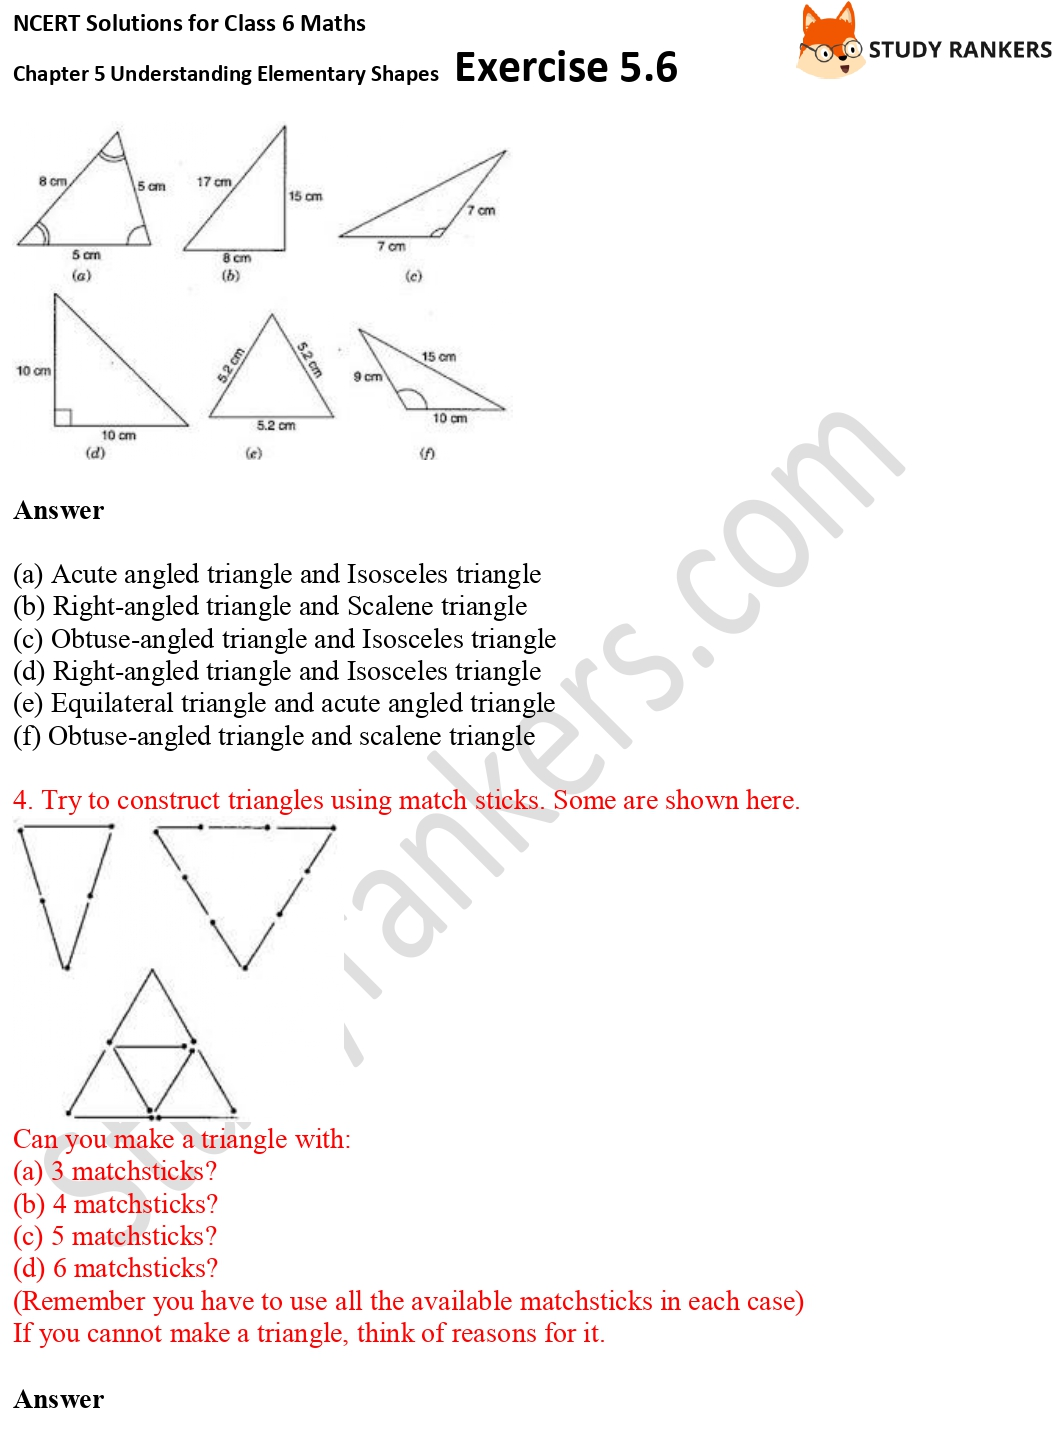 NCERT Solutions for Class 6 Maths Chapter 5 Understanding Elementary Shapes Exercise 5.6 Part 2